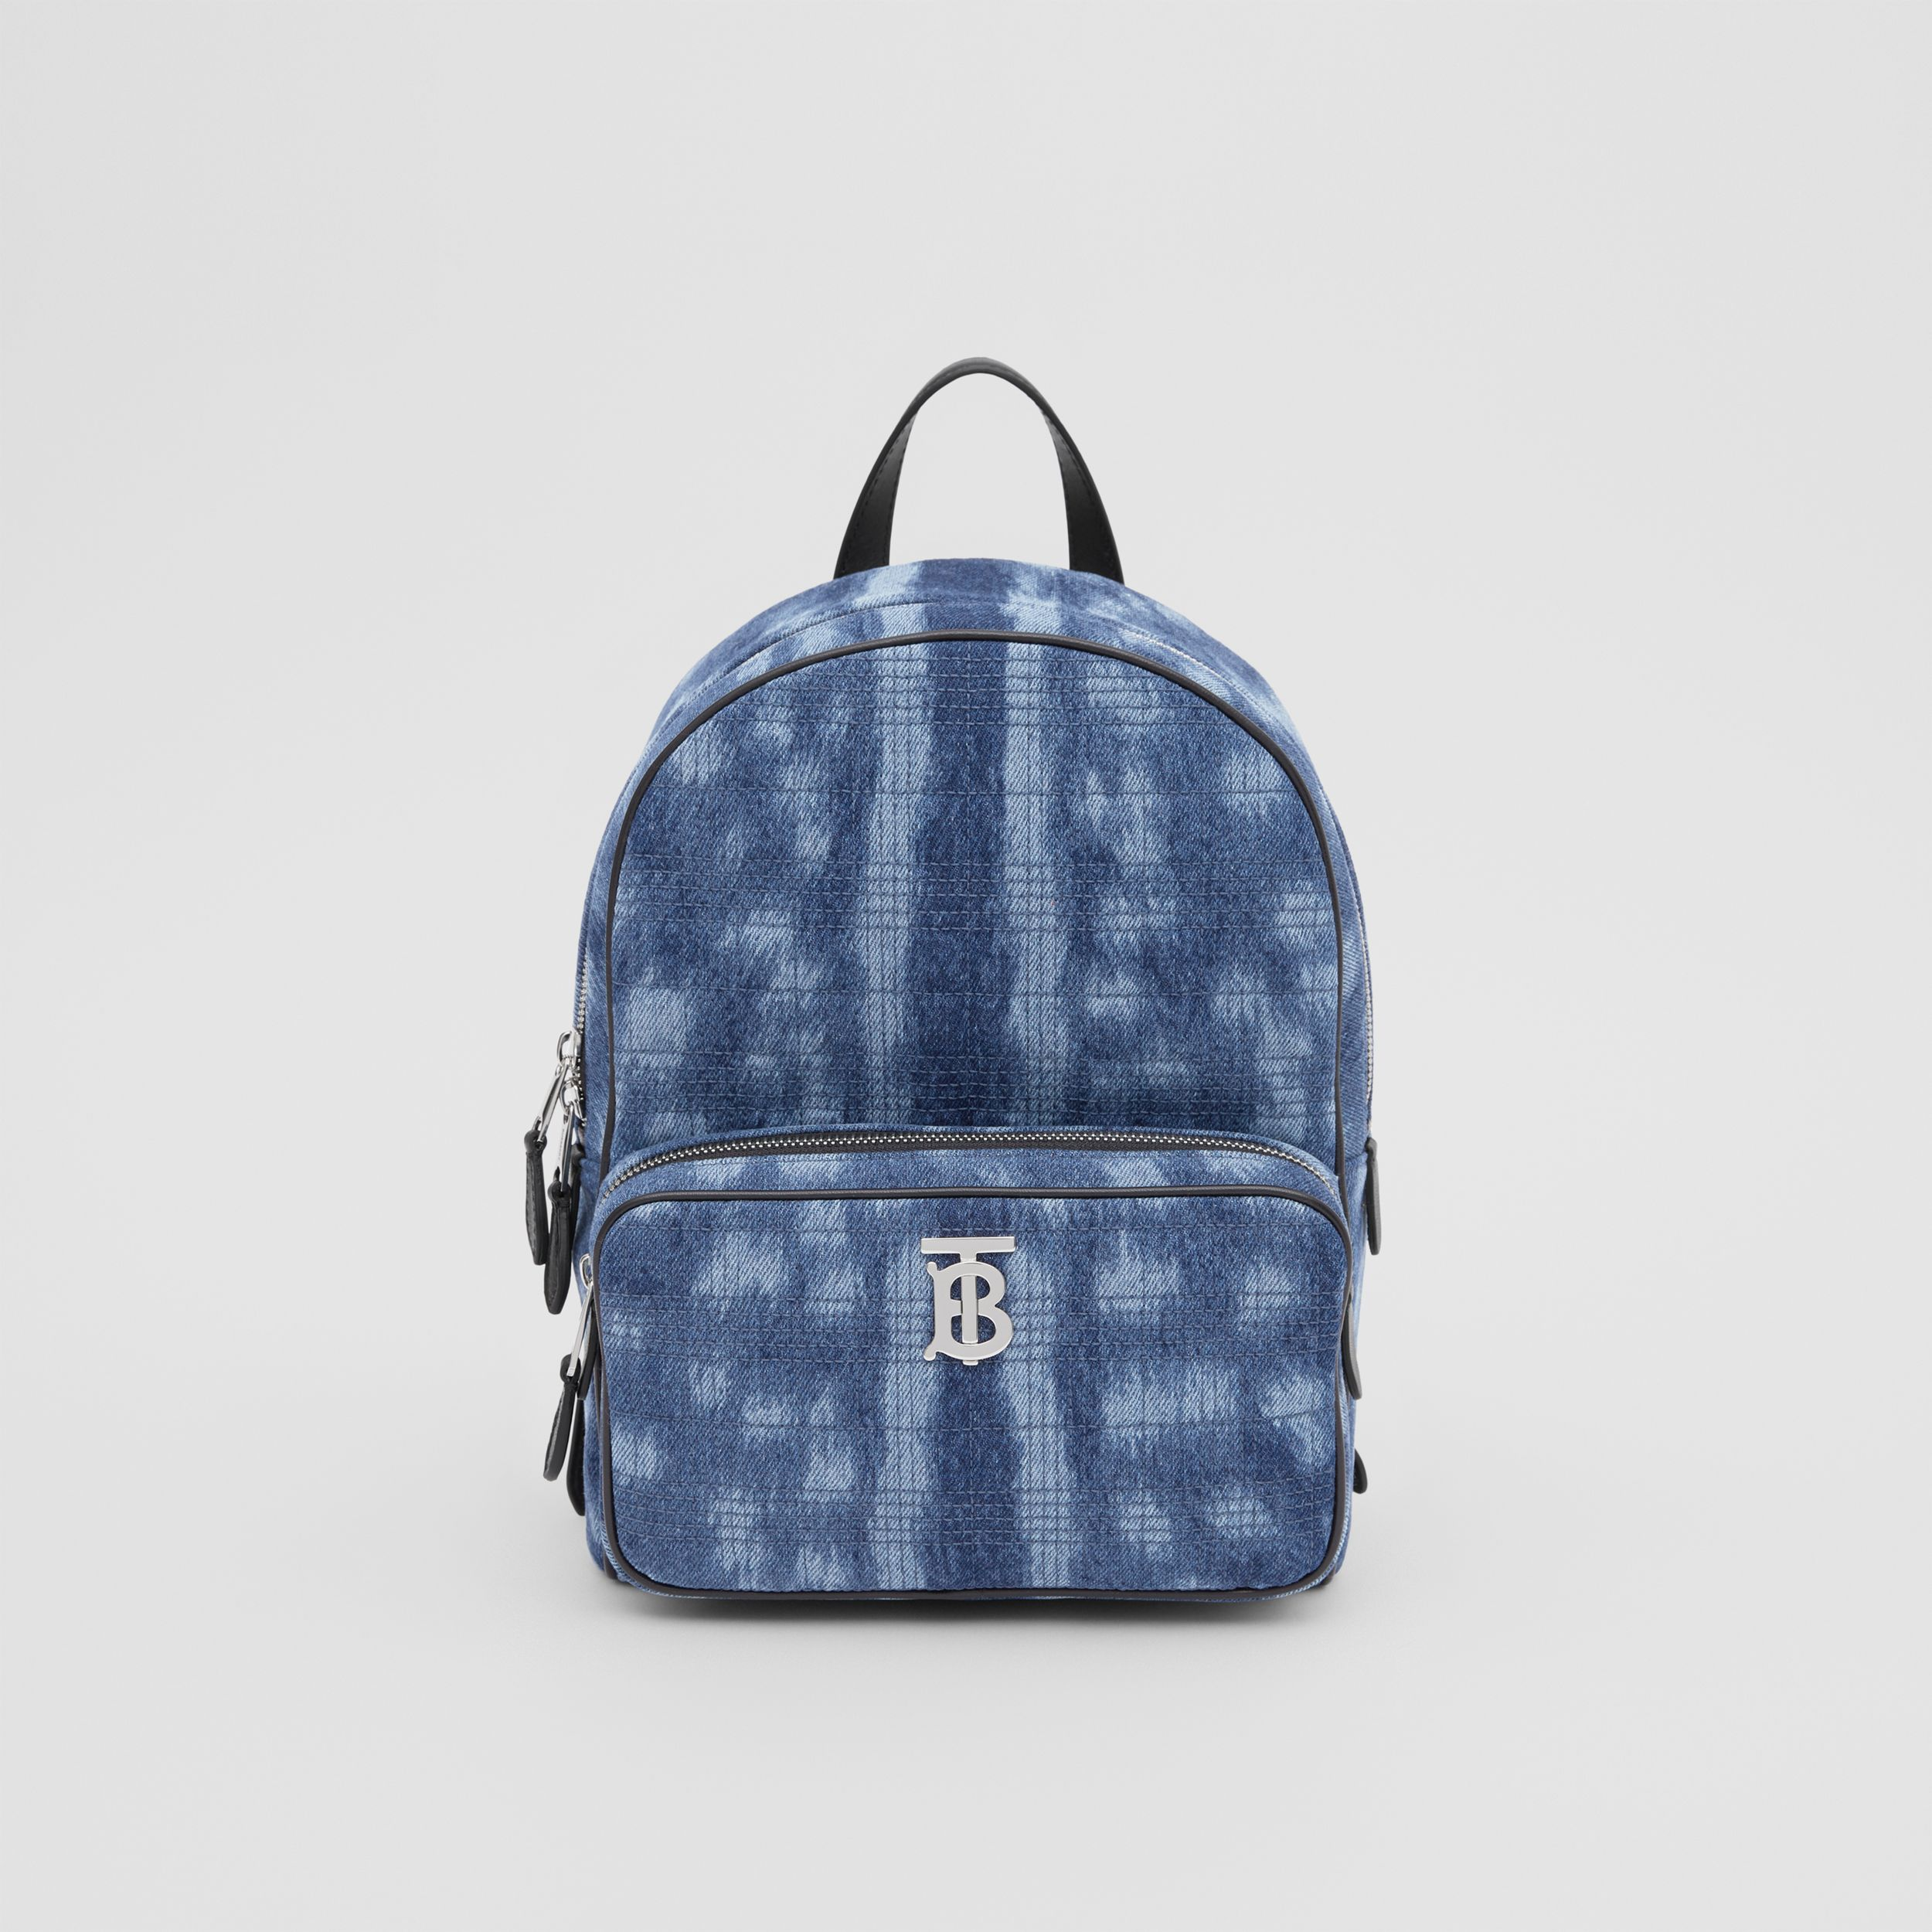 Quilted Deer Print Denim Backpack in Blue - Women | Burberry - 1